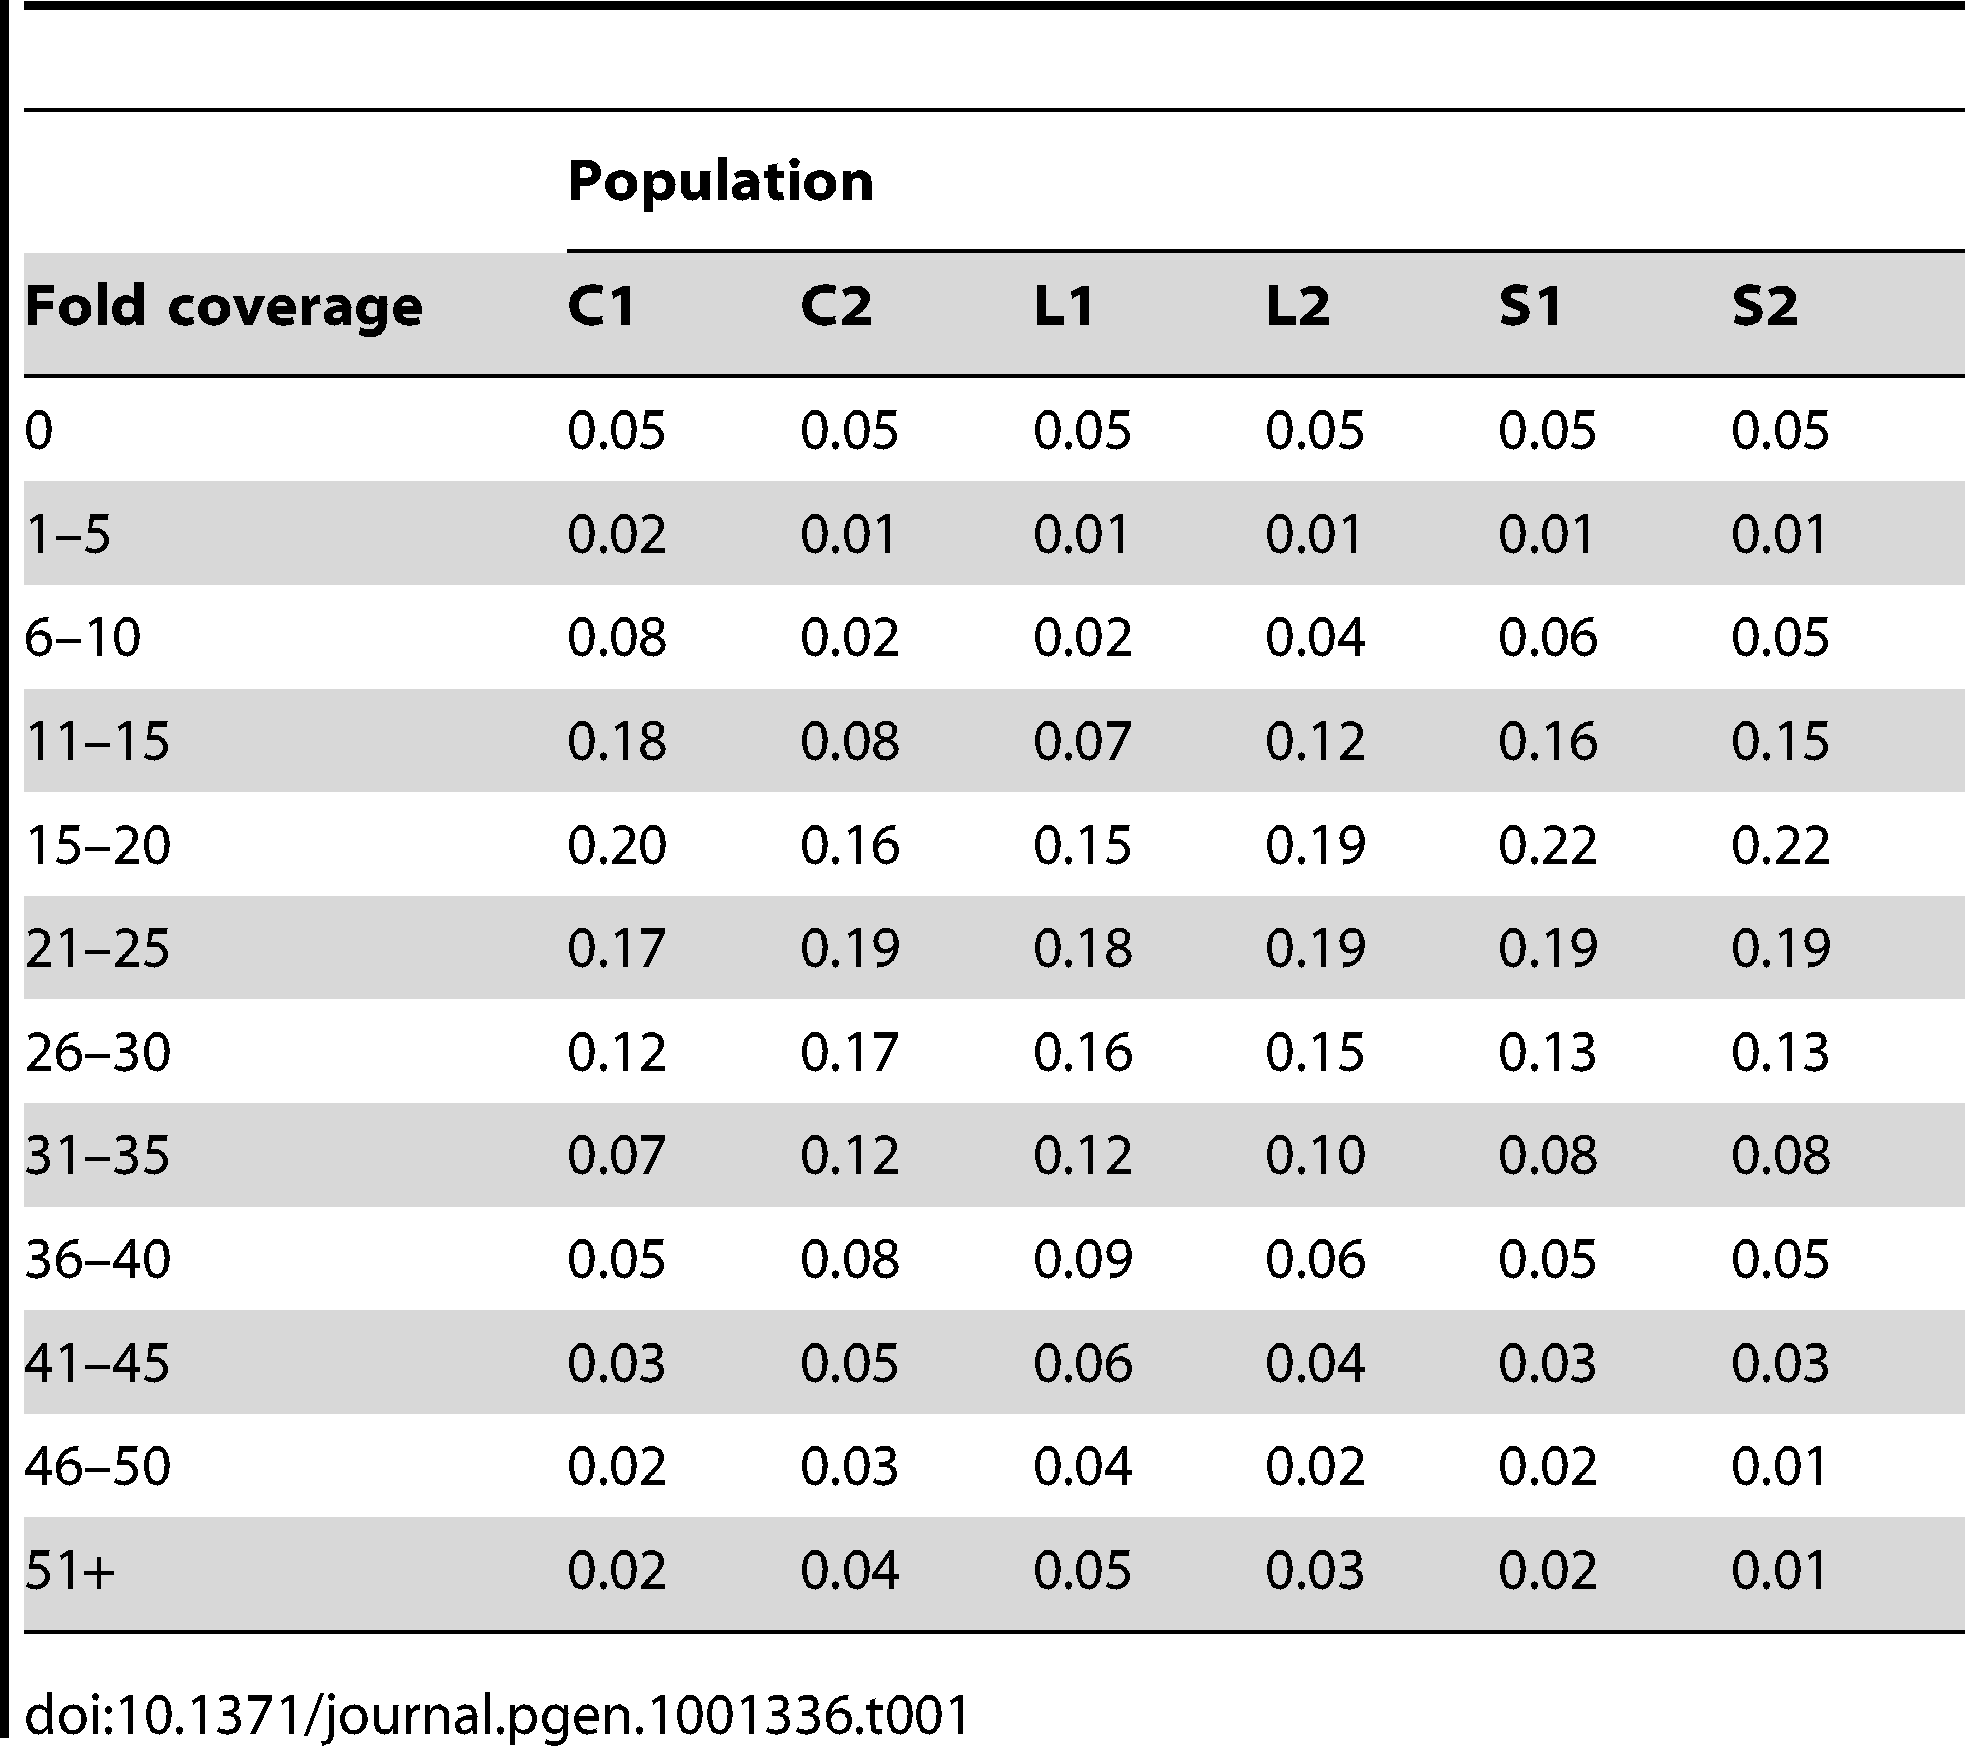 Proportion of the euchromatic genome with a given fold coverage in each population.